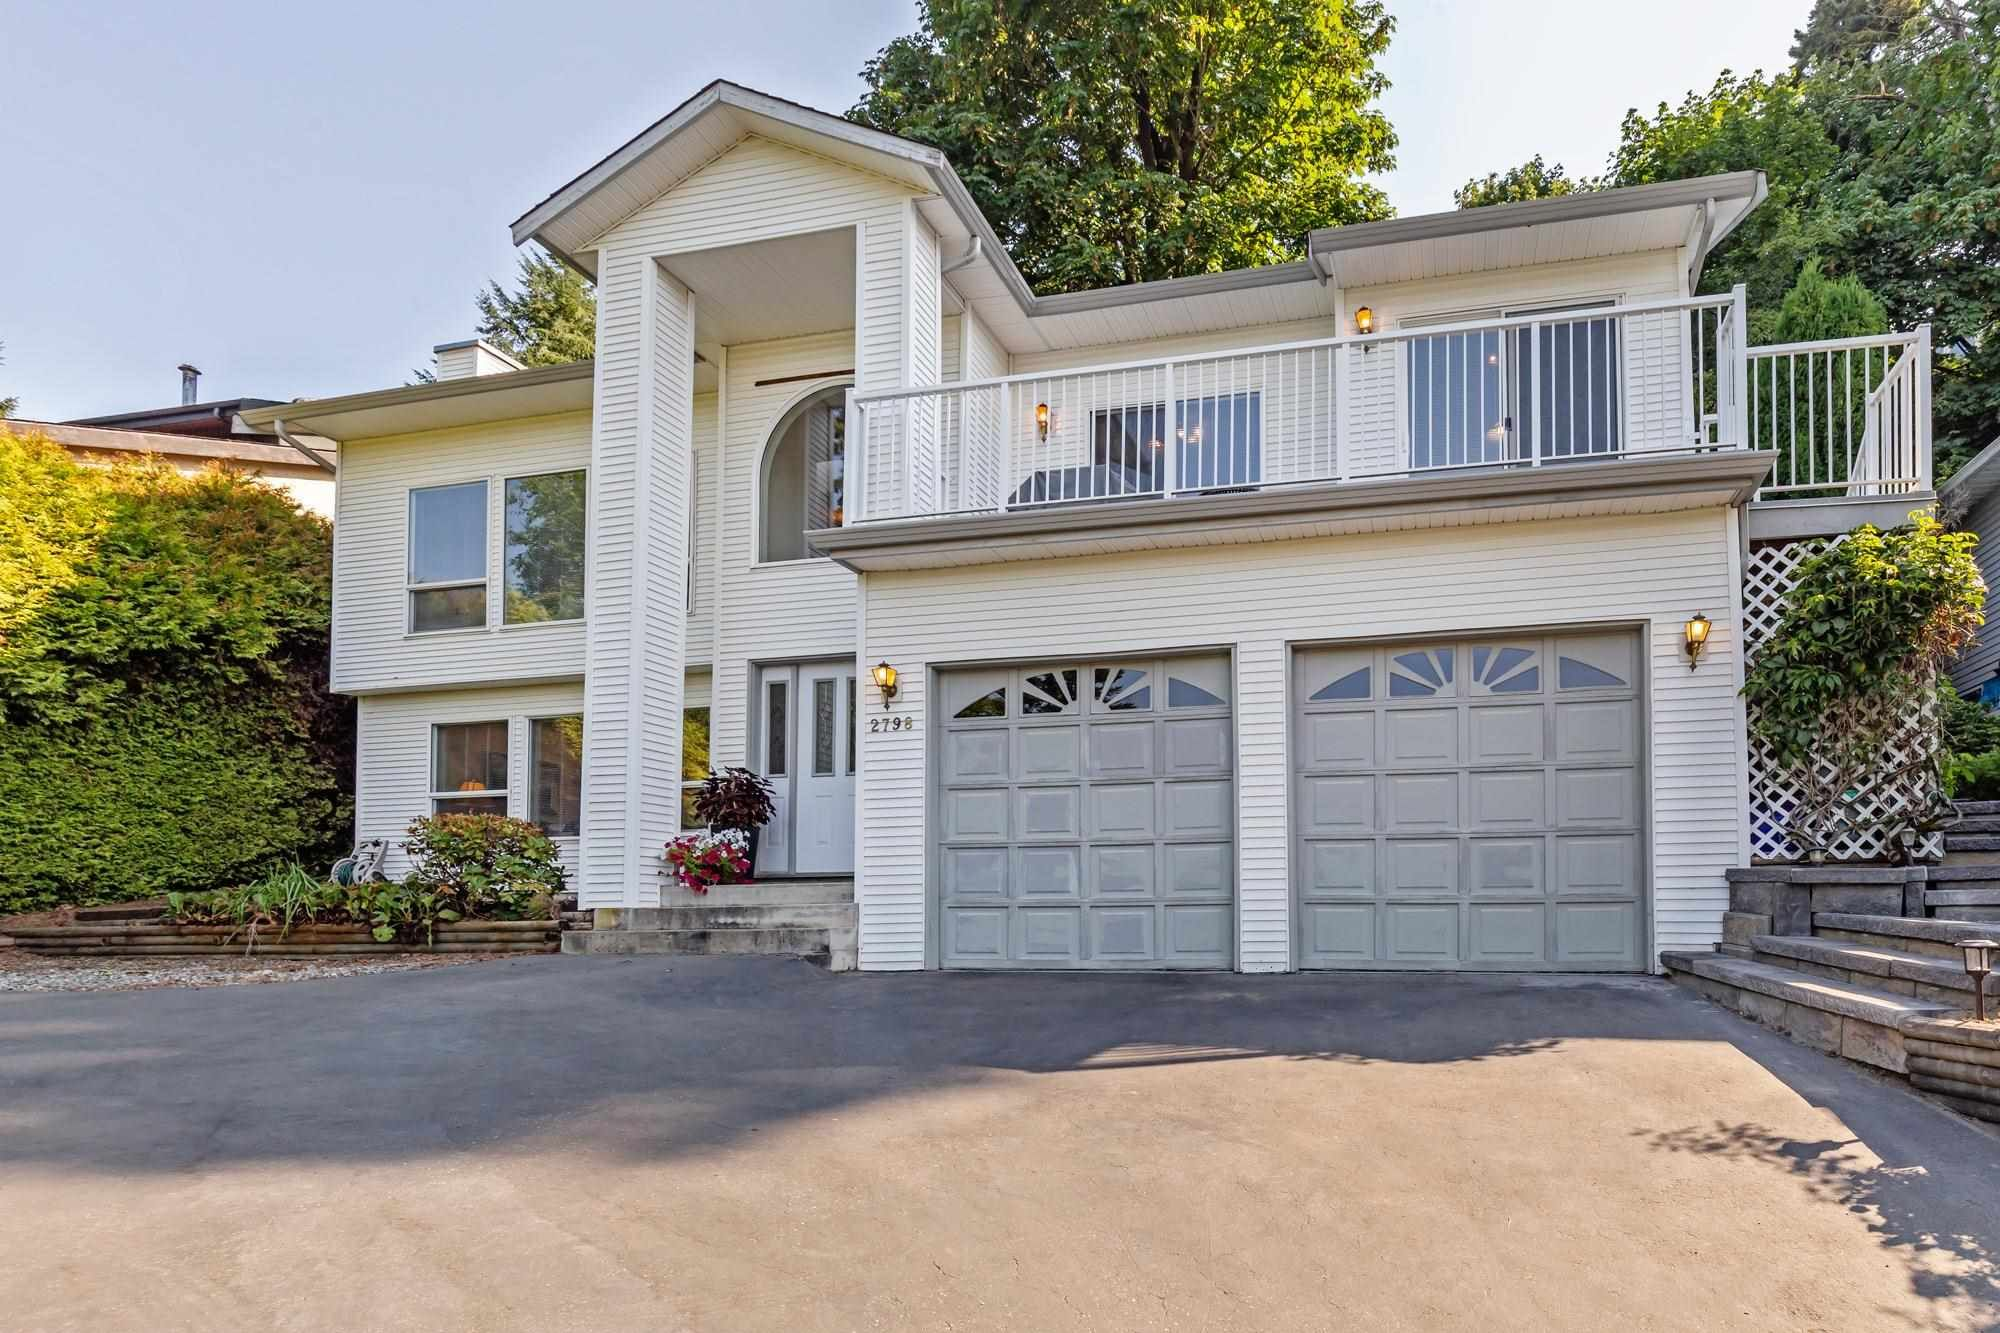 """Main Photo: 2798 ST MORITZ Way in Abbotsford: Abbotsford East House for sale in """"GLENN MOUNTAIN"""" : MLS®# R2601539"""